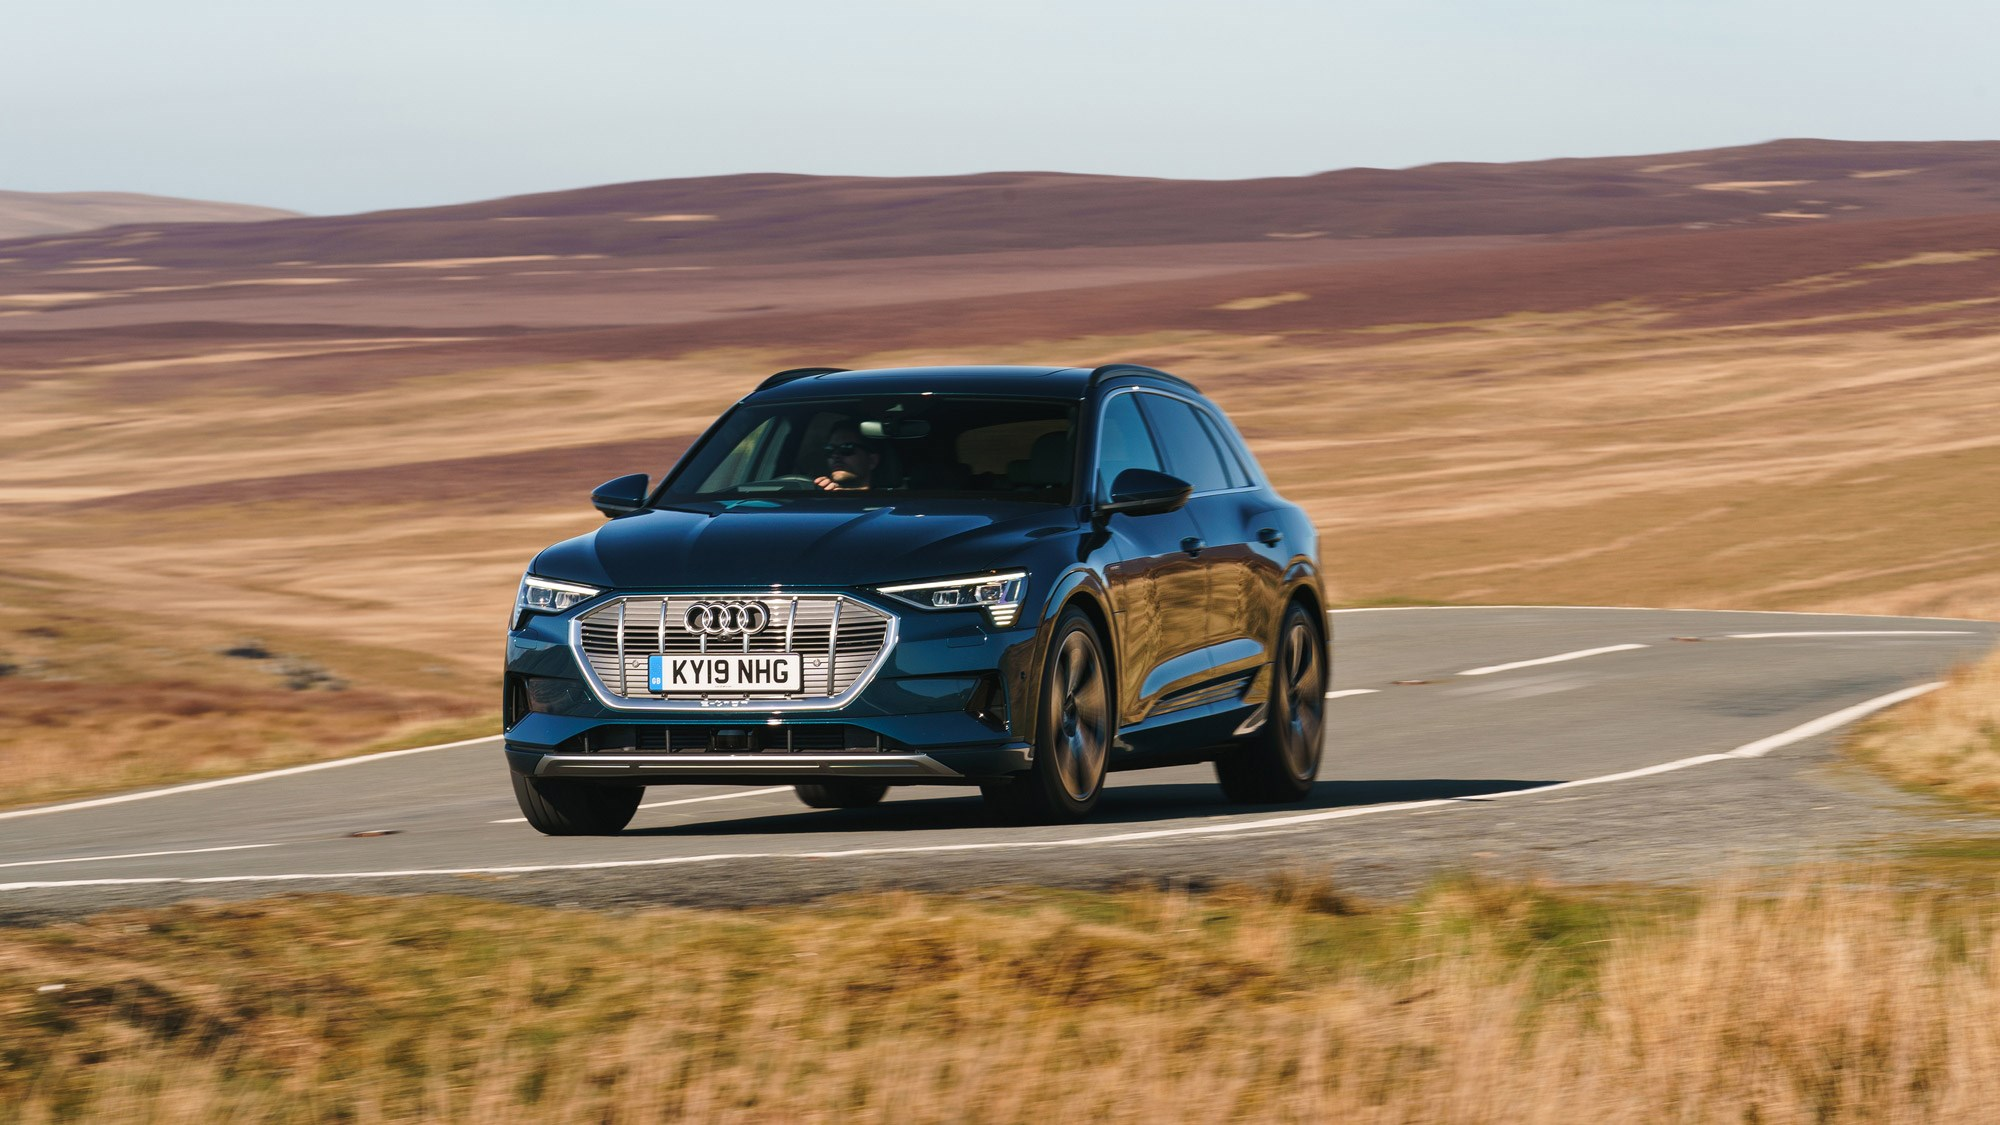 Here it is, the most important Audi in decades; the all-electric e-Tron SUV. The first step of a ascendance from nitrogen dioxide sinner to aspiring zero-emission saint, the handsome-looking EV is just the beginning for Ingolstadt's electric plans. After this, there'll be a flurry of EVs from the four rings, with a Sportback and a J1-based e-Tron GT Coupe following soon after.   Available to order now with the first UK deliveries only just rolling out of the factory, the new 2019 Audi e-Tron has a certified 241-mile electric range, and promises trademark Audi performance, four-wheel drive, the usual quality interior – and cleaner guts.   We were there when the e-Tron was first revealed in San Francisco, and we've driven it on the worldwide launch, too. It can tick all the boxes in Dubai – but can the e-Tron do it on a cold day in North Yorkshire? Keep reading for our full UK review.   ***What's the UK-spec Audi e-Tron like inside?   Slip into the e-Tron, and it fits Audi's tagline for the car perfectly. 'EV goes Audi' is the ethos inside and out, and that means the e-Tron's cabin could be in any Q car.   The touchscreen-heavy cabin invites you to swipe and pinch just like the A8 – and even the steering wheel isn't particularly EV-alike. The cruise control switches are lifted straight from the TTS we've driven here, and there are paddles, too – which we'll get to later.  In fact, it's the only the transmission where the e-Tron dares to be different – and that's because it doesn't have one. Instead, the area between the passenger and driver is full of storage space with cubby holes, cup-holders and a wireless phone charger all packed into a rather bulky, plastic frame. We'd rather the empty space.   Still the e-Tron does differentiate itself with an unusual thumb-flicking drive selector. Mounted under a hand rest, it's pleasingly tactile - and is clicked forward and back by your thumb and index finger. It's a small thing, but it's something you'll notice every time you drive.   ****Well. how does the e-Tron actually drive, then?   Click into Drive, gingerly apply the throttle – this car won't creep forward like a Tesla – and the firmness of the pedal is the first big surprise. The e-Tron is a 2.5-tonne SUV, with a right pedal more McLaren-like than you'd think. It quietly makes you less blunt with your inputs, and in S mode, it gives the car a sportier feel, too. It's a win-win.   Flex the power of the e-Tron with your foot to the floor, and it accelerates in a progressive, but ultimately physics-bending way, and eerie silence is quickly overtaken by wind and road noise.   ****What's it like to drive in the UK?   That instant torque makes entering  roundabouts easier, allowing you to more safely dart into gaps, and it makes overtaking a simple, effortless experience, too. Passing another car is as simple as checking the oncoming traffic, easing on the power and slotting in front. No hesitant kickdowns, no noise –  just a whoosh. Seamless.   As for the ride? Even on North Yorkshire's roughest roads, the e-Tron delivers a composed, and planted ride comfort regardless of the setting you're on. Flick into Comfort using the very familiar Drive Select button, and you'll find the throttle response rounded off, lighter steering and the bumps smoothed out.   Move over to Sport; power response is instant, the wheel weights up and you feel those nooks and crannies in the surface of the tarmac a little more. Body roll, while minimal in Comfort, is further reduced in Sport, and makes you want to push the 2.5-tonne SUV just a bit harder.  Braking uses both discs and energy-saving regen, seamlessly switching between the two depending on your application. It works very well, with little jolting or juddering as the system switches between the two.  On motorways, you'll find the e-Tron like any other car – except for its effortless ability to overtake. Wind noise and tyre noise are even more apparent without the hum of combustion, though, and you'll notice whistling around around the wing mirrors and A-pillars.  We were driving a conventionally mirrored model; it'll be interesting to see if the lower-dragged, electric-cameras have a big impact on wind noise. And some more on the e-Trons webcams. They're actually legal in the UK, and they're able to slightly enhance the image they receive, so you actually see more with them in low-light conditions.    They're standard with the £82,270 Launch edition e-Tron - not the entry-level £71,520 car. If you want them on anything other than launch-spec, the cameras will set you back £1250.   And what about those paddles? Look around the cabin, and you won't find a B-mode for increased regen; instead, Audi's mapped that function to paddles behind the wheel. Tap the + paddle to increase resistance and energy recovery, and pull the – paddle for less. In some ways, it makes sense to have it behind the wheel;  it's a form of engine braking or 'gear' use – but it'll take  time to learn and use it intelligently.   ****Newton still wins  Of course, the new Audi e-Tron isn't a sports car, and when you're doing anything other than accelerating in a straight line , it can't really repeal the laws of physics. Body roll isn't a large factor, but, the height and the weight of the car is more apparent on corner entry. It's very much the same experience you get in something like a Tesla Model X; it's a supercar when going straight ahead, but you're acutely aware of every kg of its weight when you're doing anything else.   ****UK verdict?   In many ways, the e-Tron is just like any other Audi, inside and out - but that's what makes it exciting. It's an SUV you can imagine slotting easily into your everyday life, with more charging options, and packages easing you over the ever-shrinking hurdles of EV ownership.